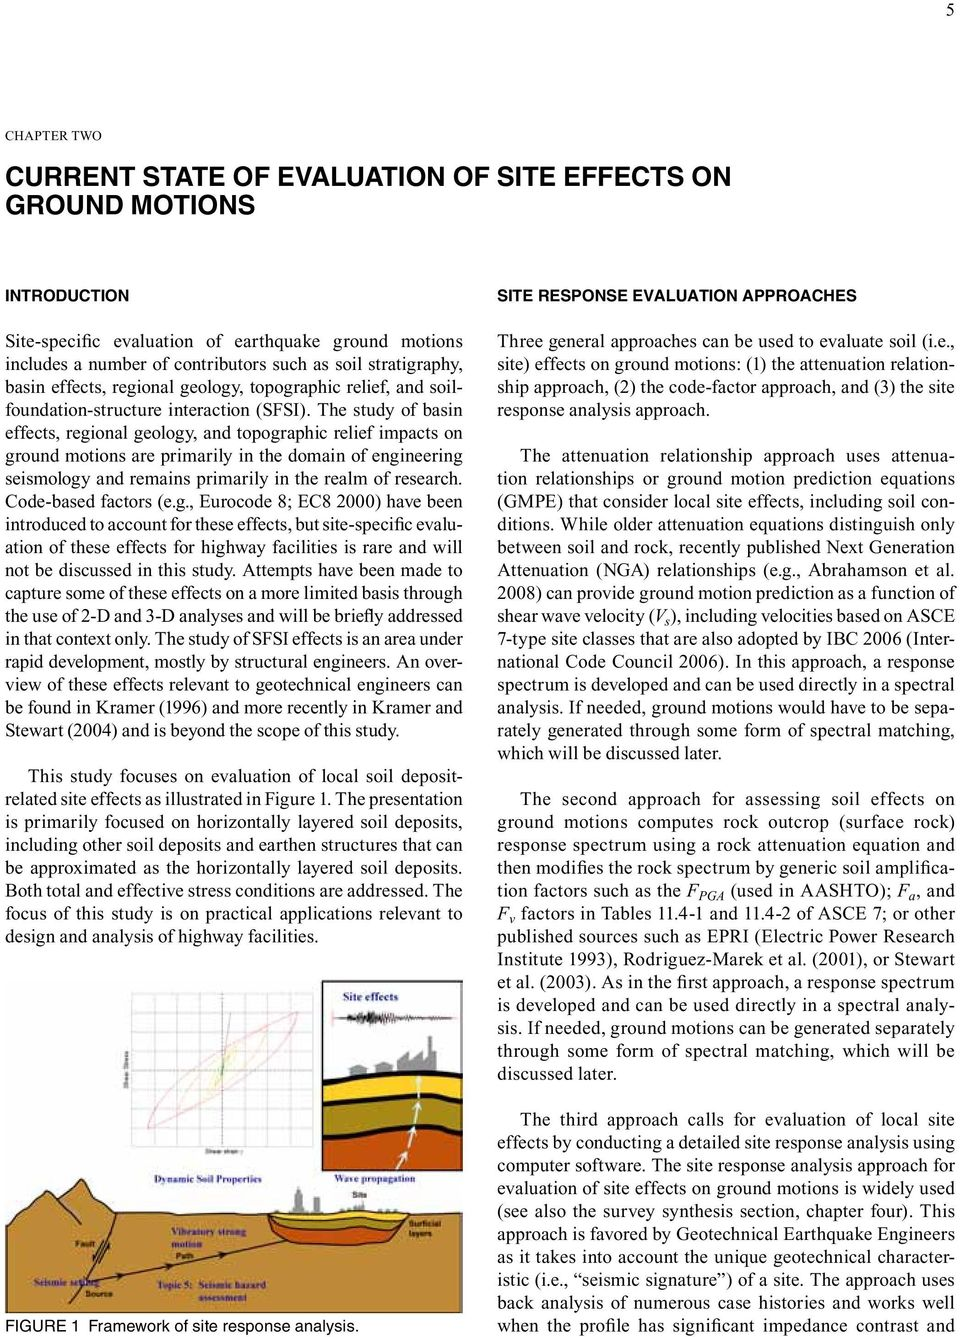 The study of basin effects, regional geology, and topographic relief impacts on ground motions are primarily in the domain of engineering seismology and remains primarily in the realm of research.